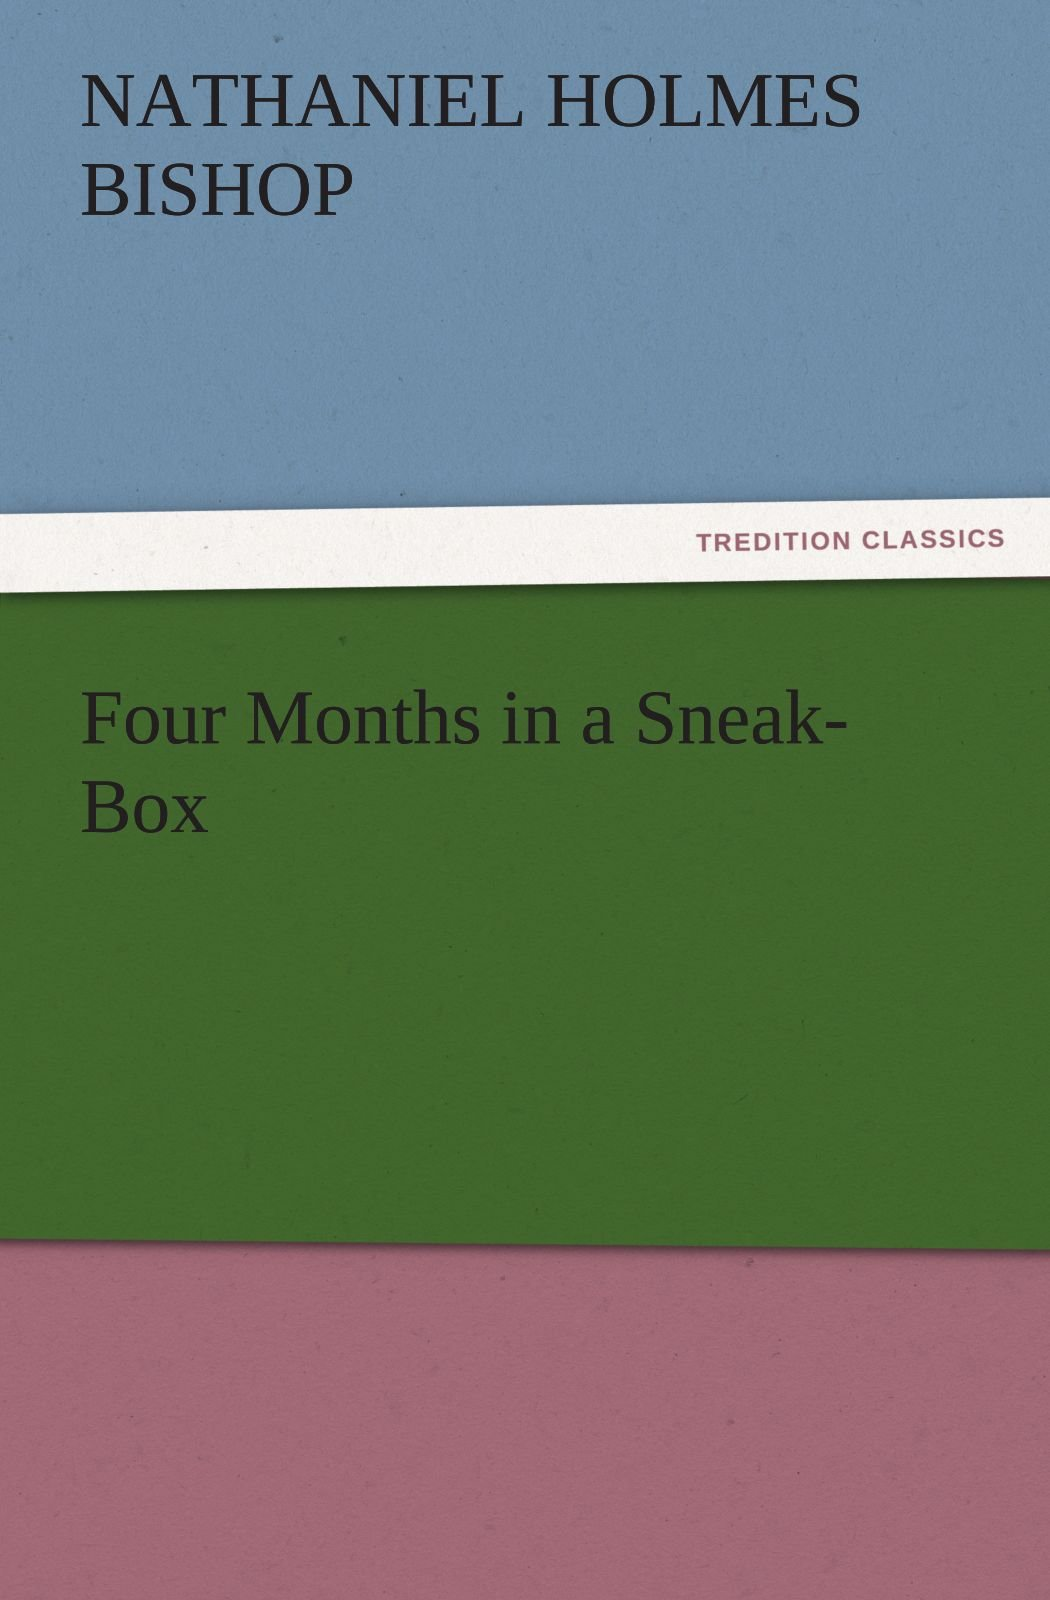 Download Four Months in a Sneak-Box (TREDITION CLASSICS) PDF